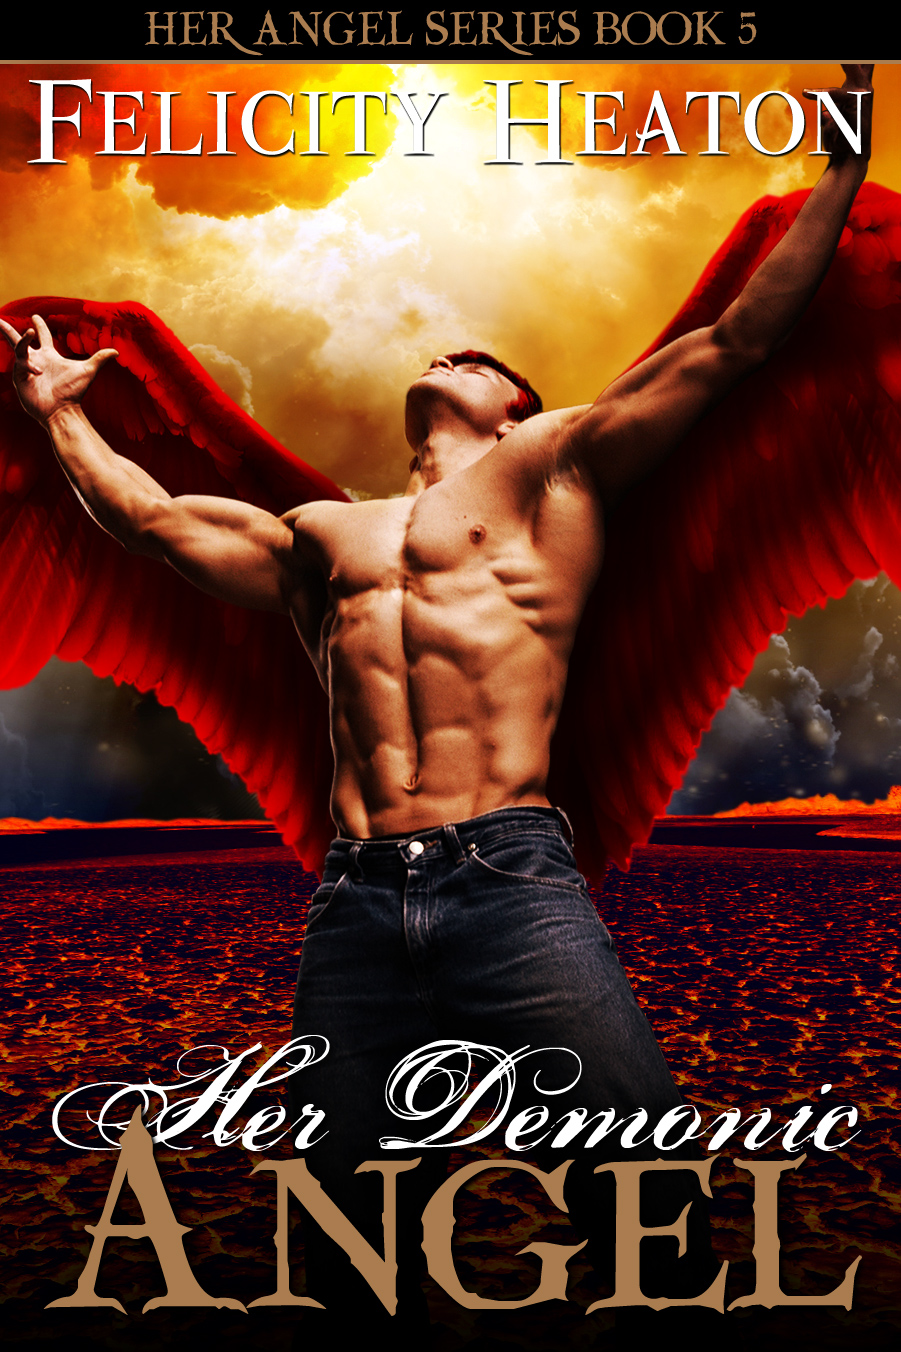 Paranormal Romance Book Covers : March felicity heaton paranormal romances with